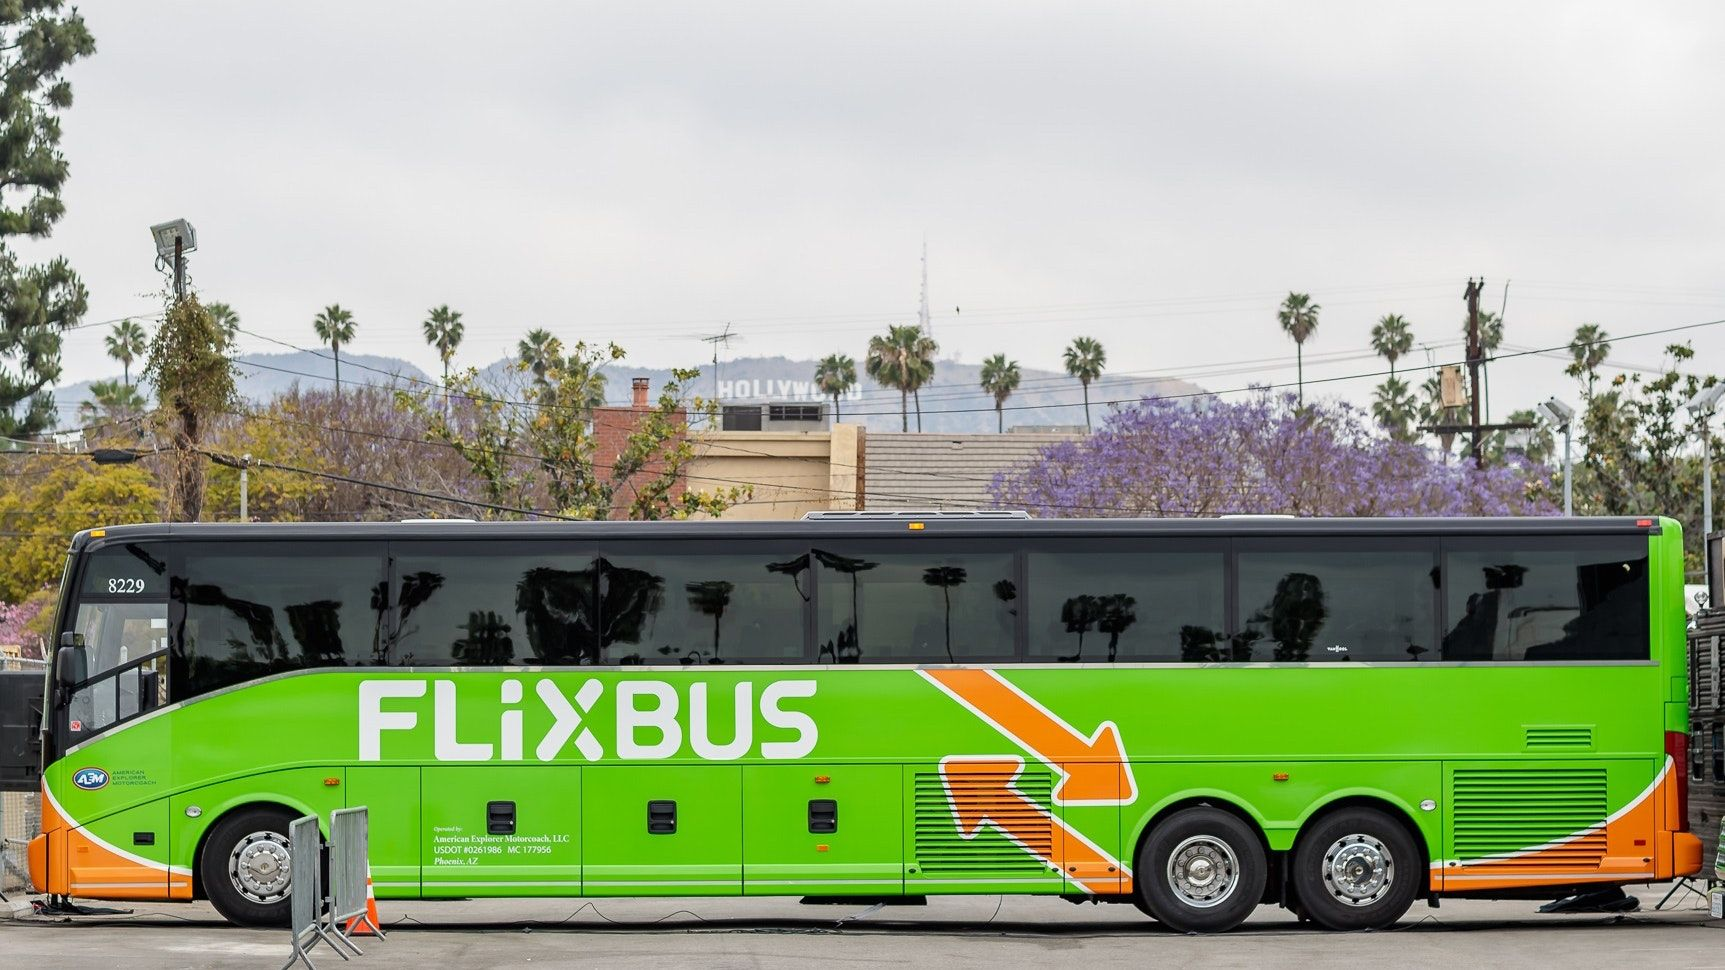 L A To Vegas For 2 99 Europe S Flixbus Rolls Into The U S